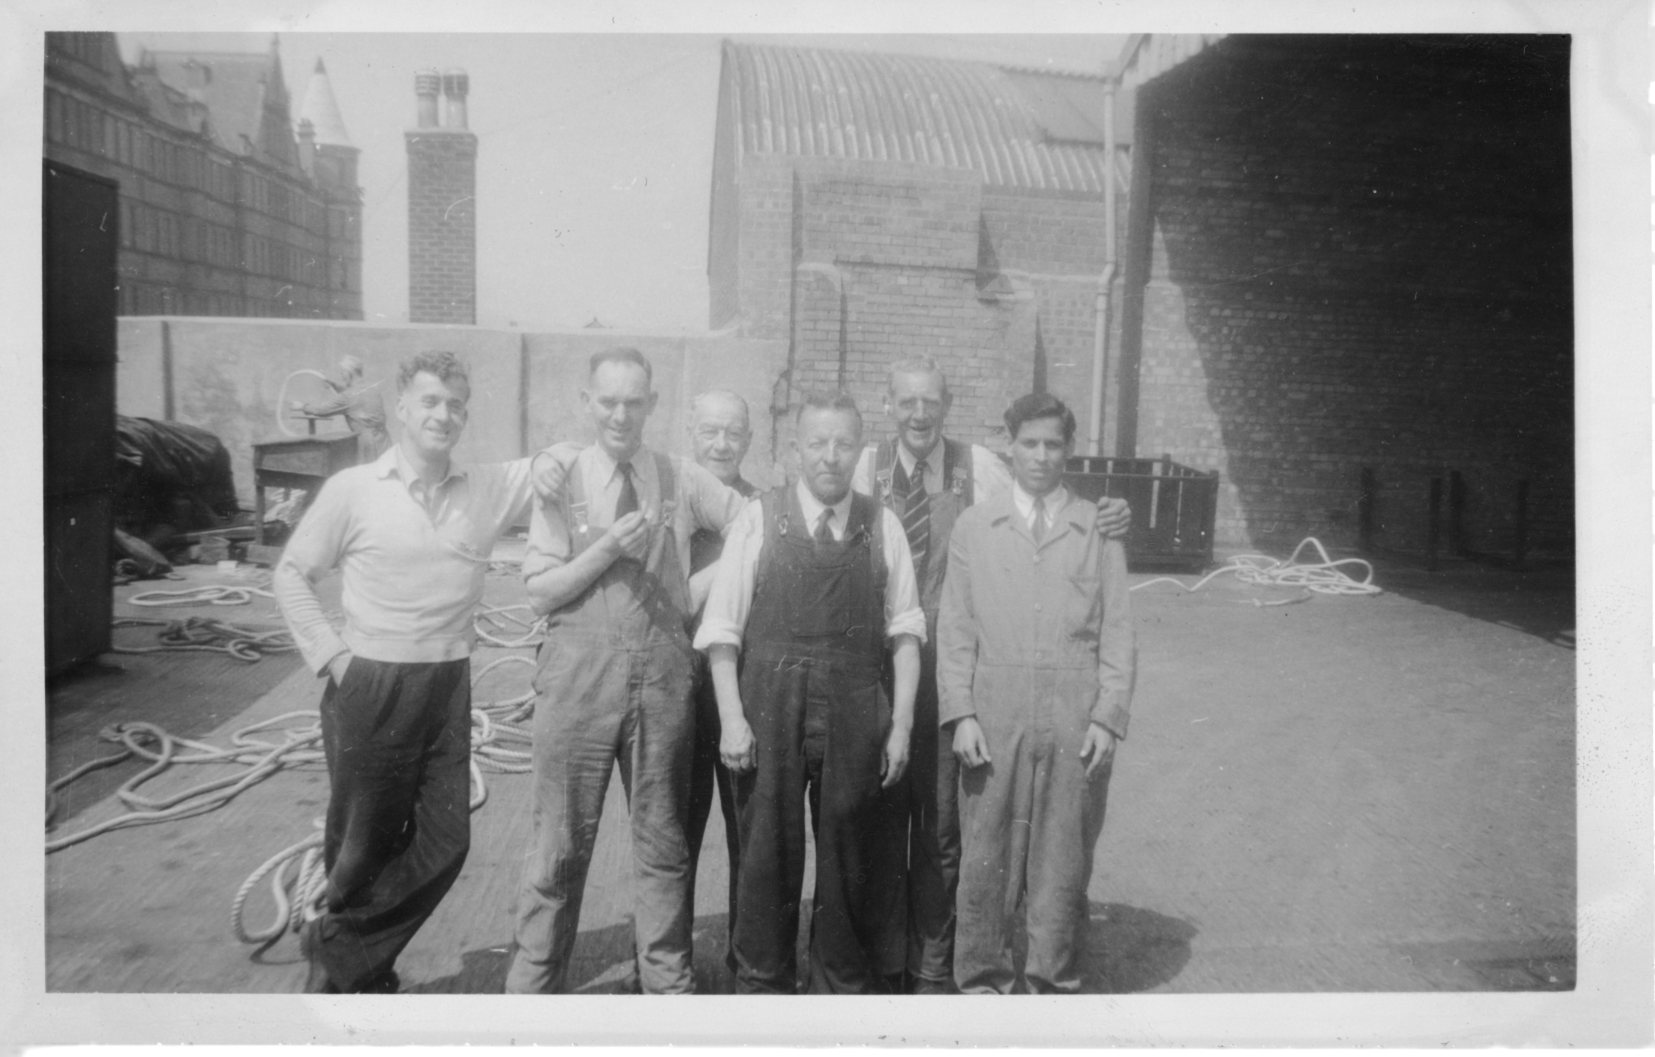 July 1958: BRITISH ROAD SERVICE, CHEAPSIDE. Front LtoR: ?, Stanley Greensall, Arthur Cully, Singh.